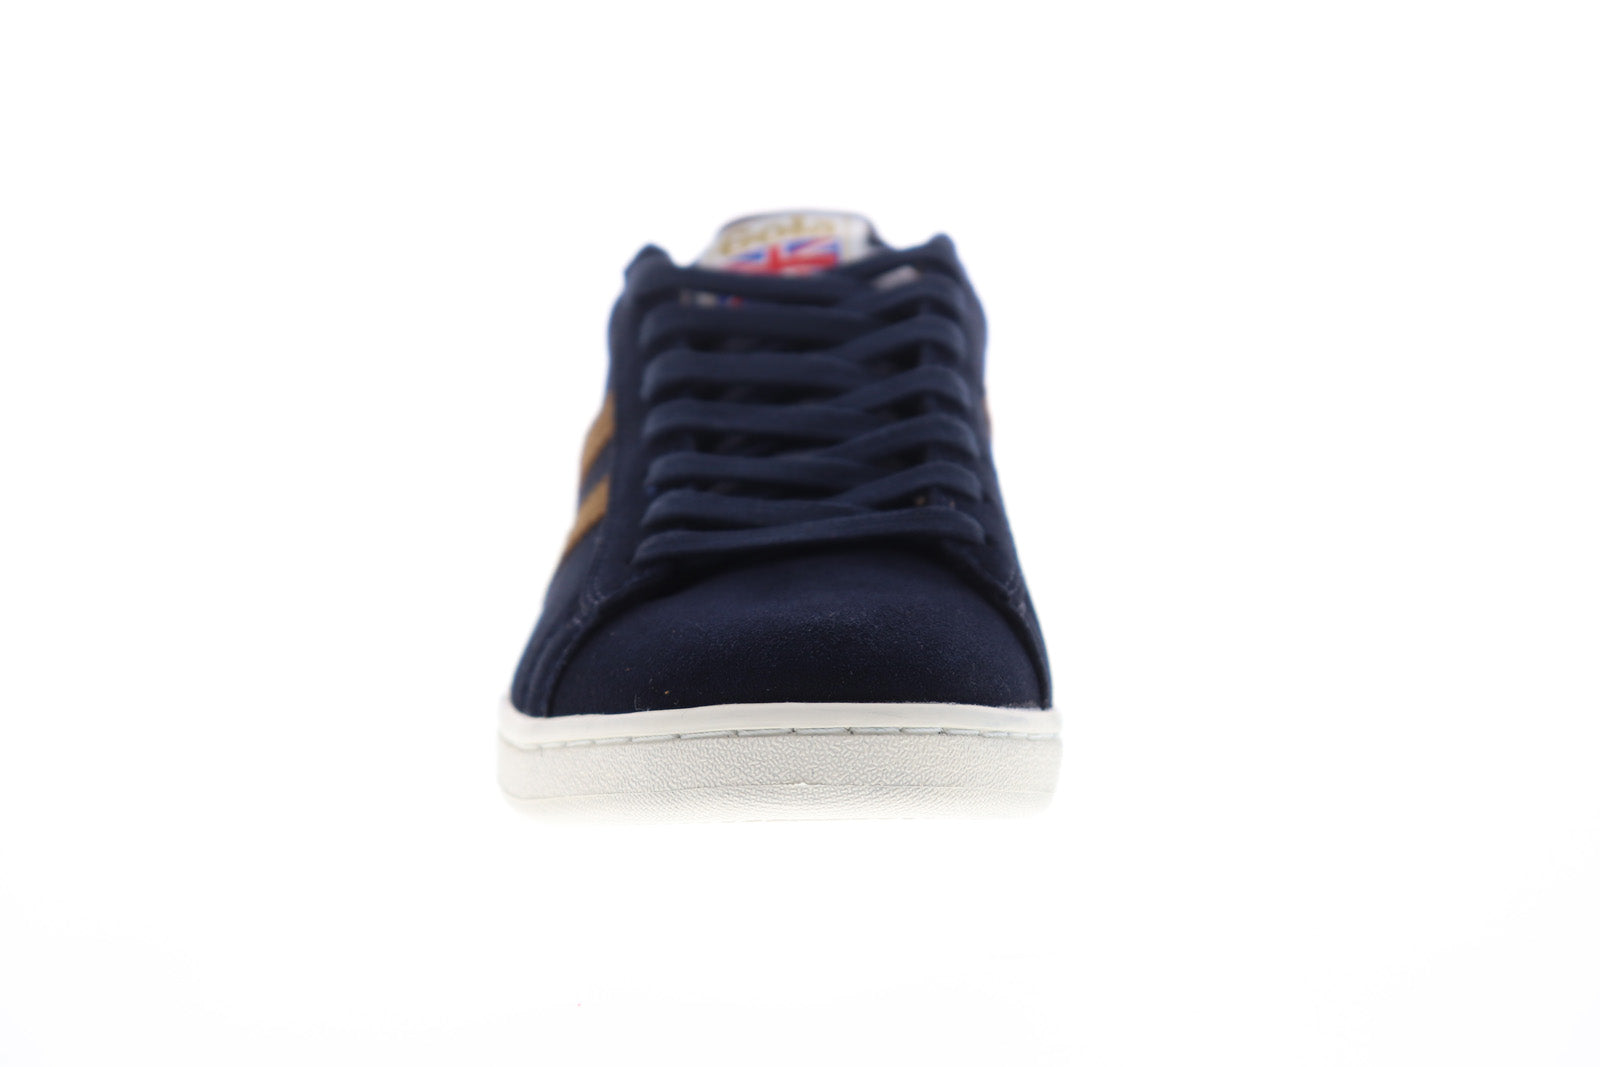 Gola Equipe Suede CMA495 Mens Blue Low Top Lace Up Lifestyle Sneakers Shoes